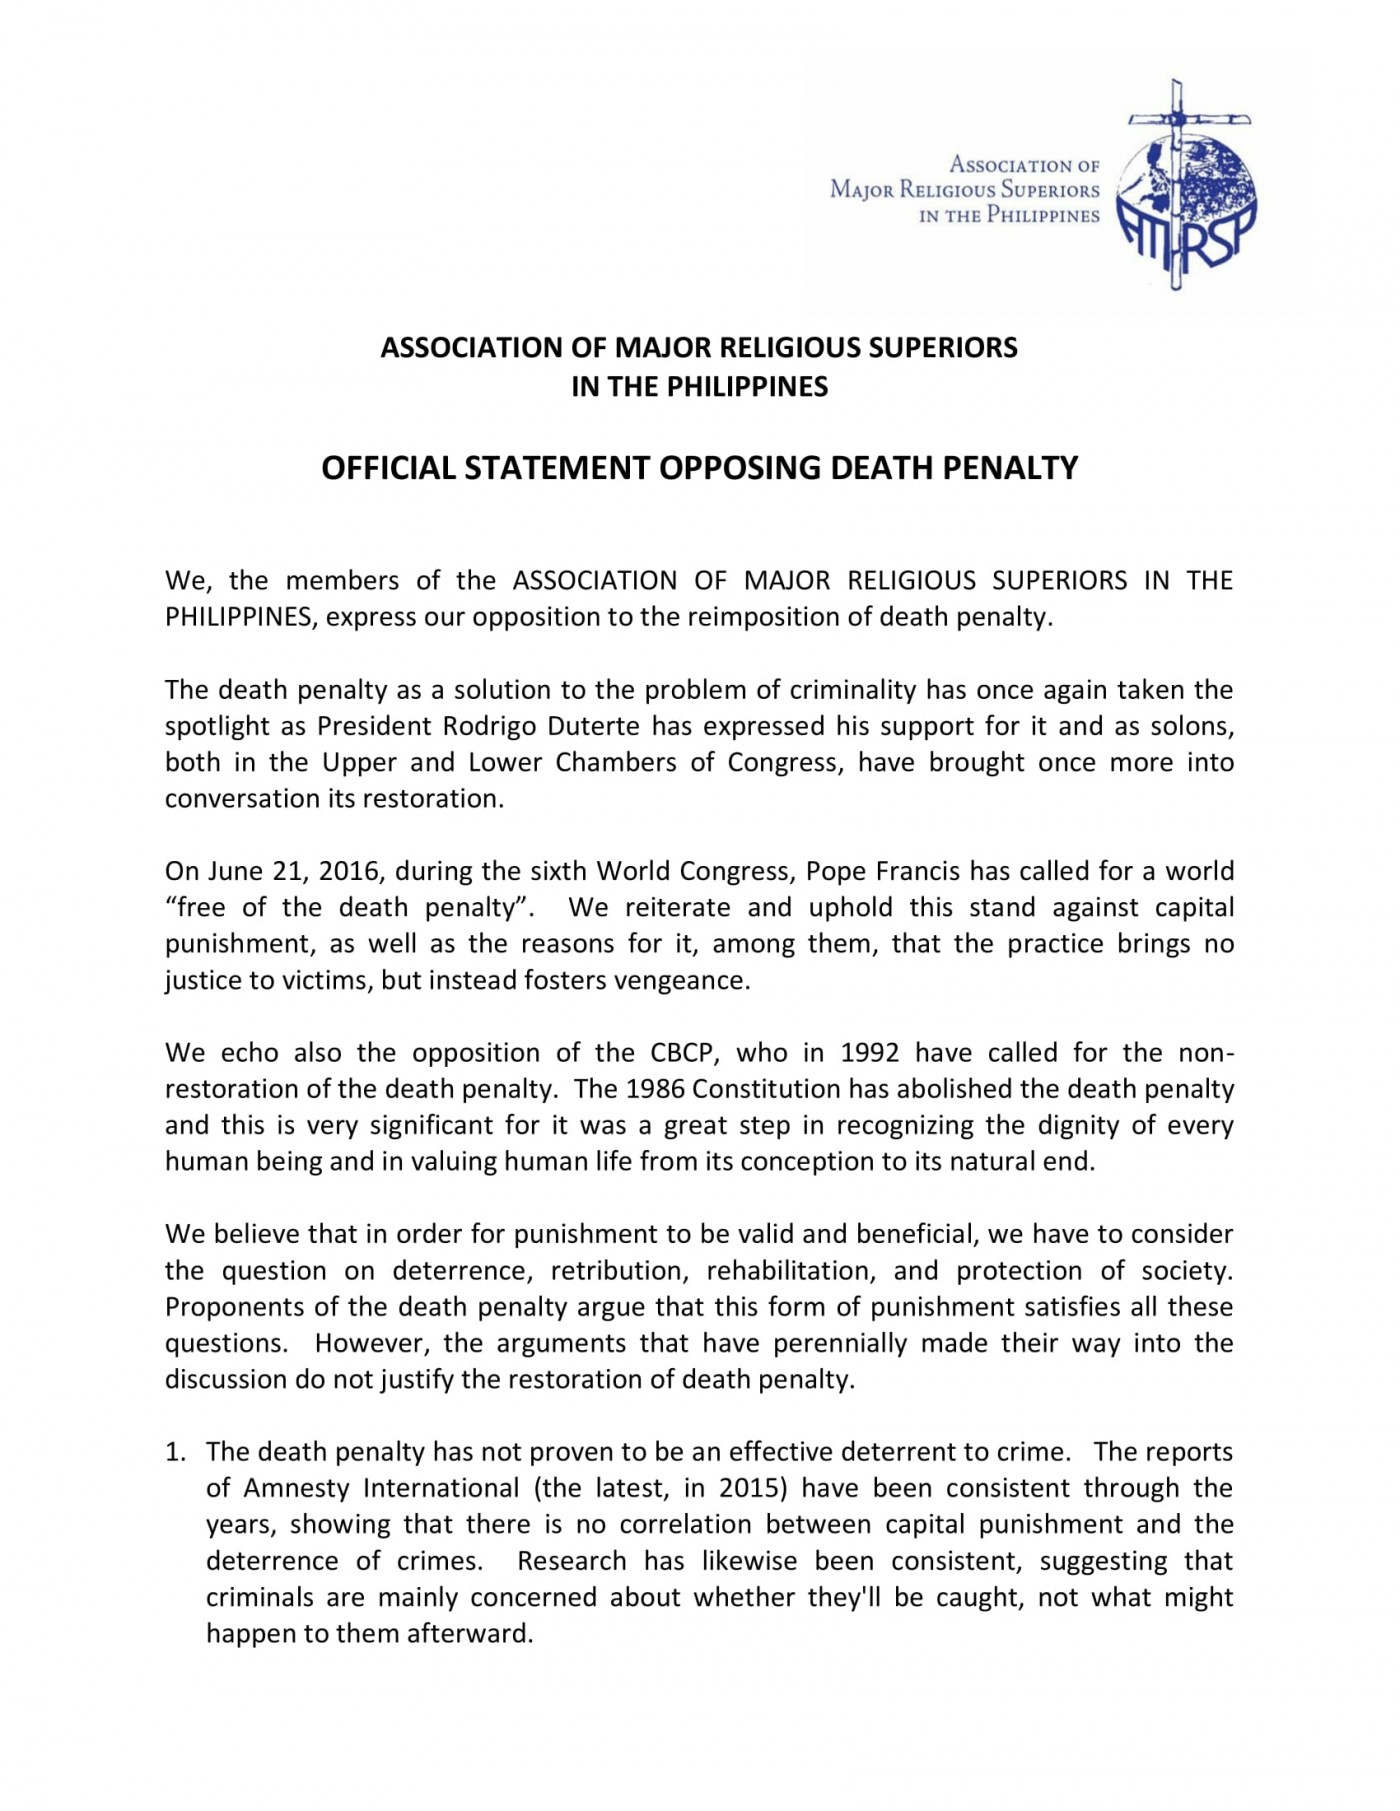 Against The Death Penalty Essay - Words | Bartleby